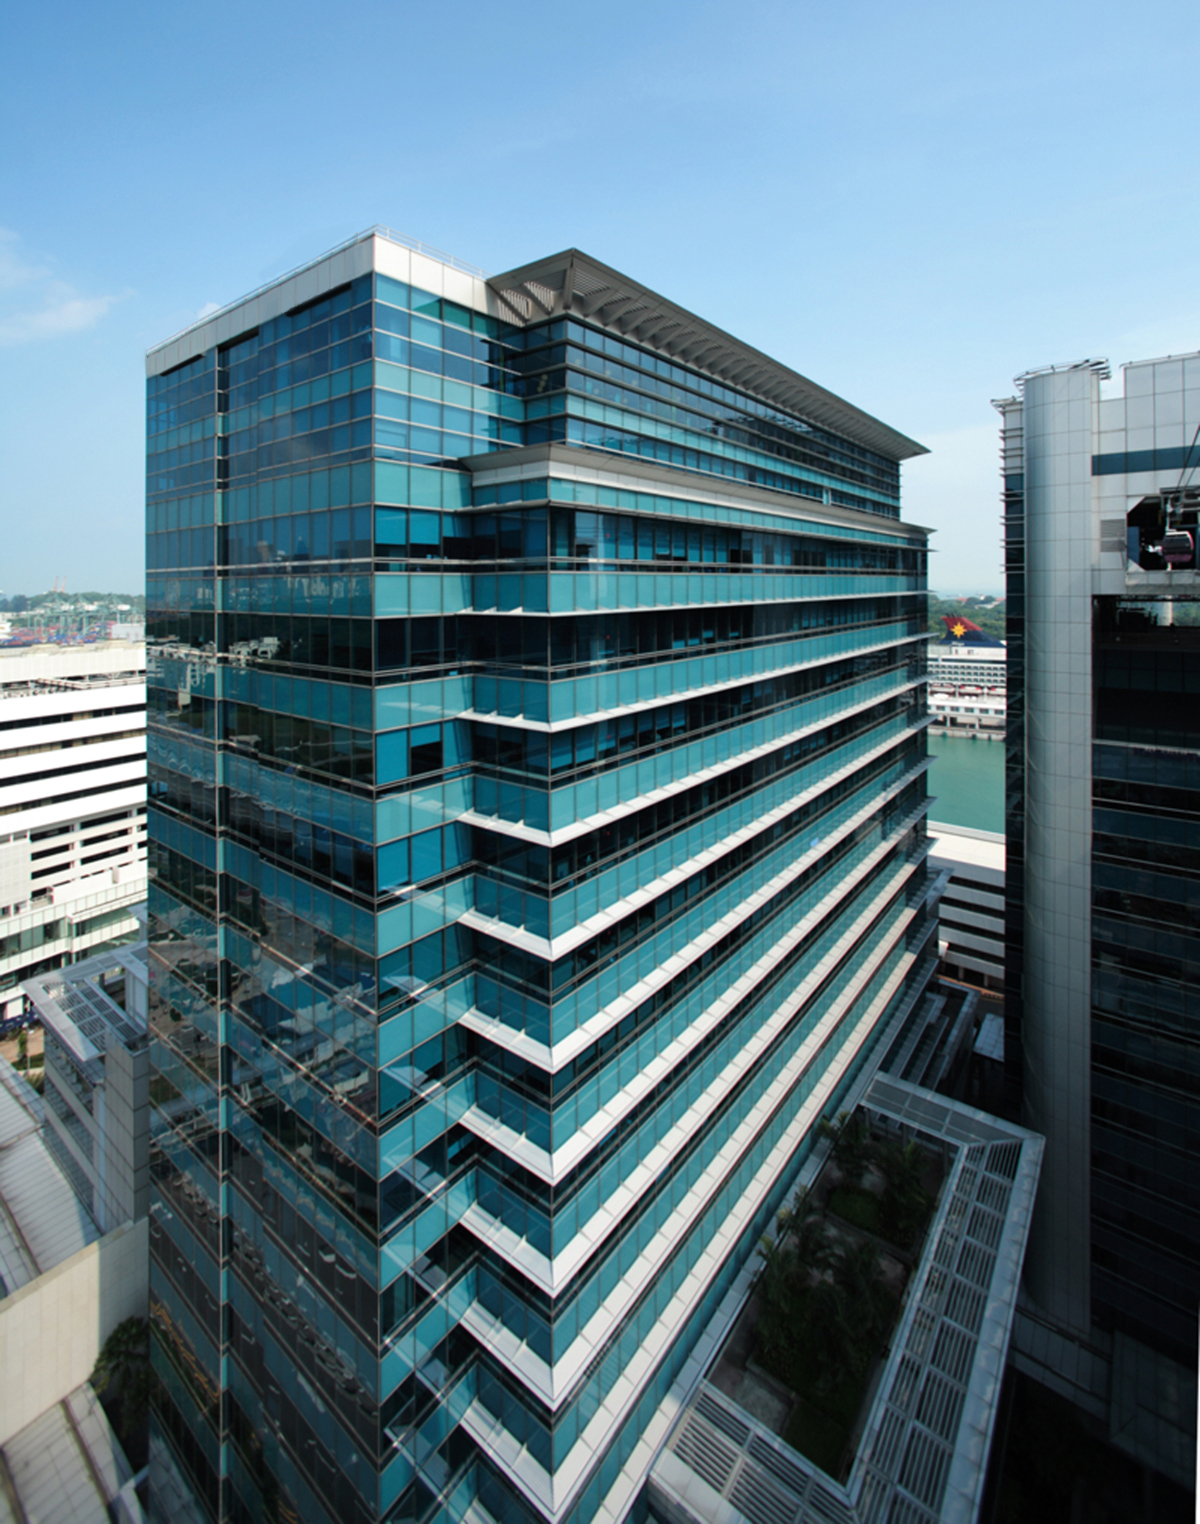 Regus - HarbourFront Tower One - 1 Harbourfront Place - Singapore